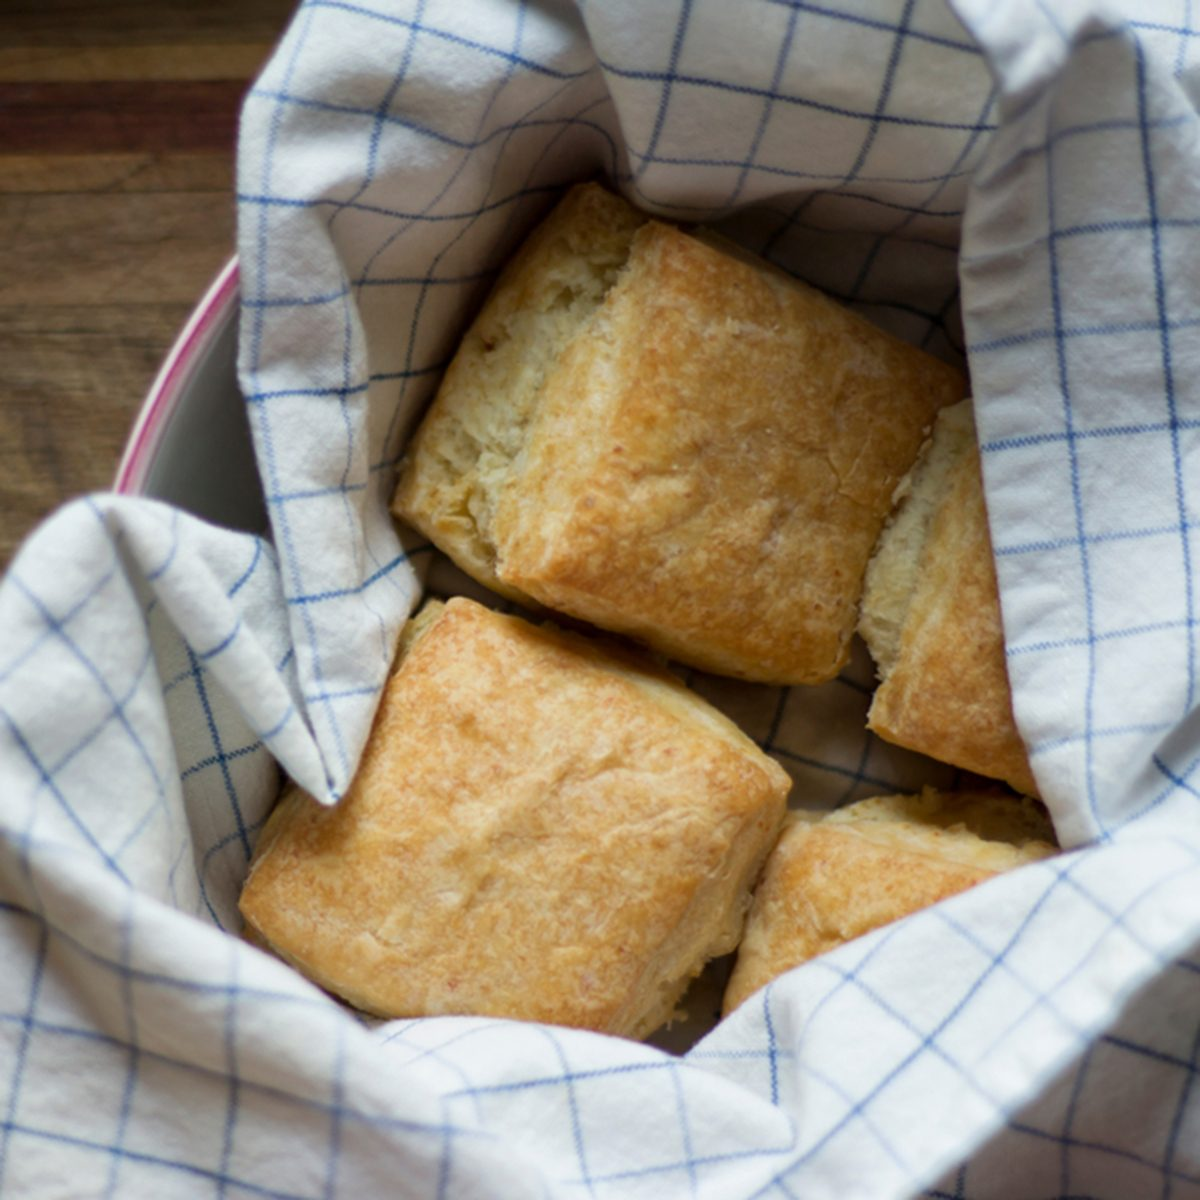 Freshly baked American biscuits in a kitchen towel and bowl